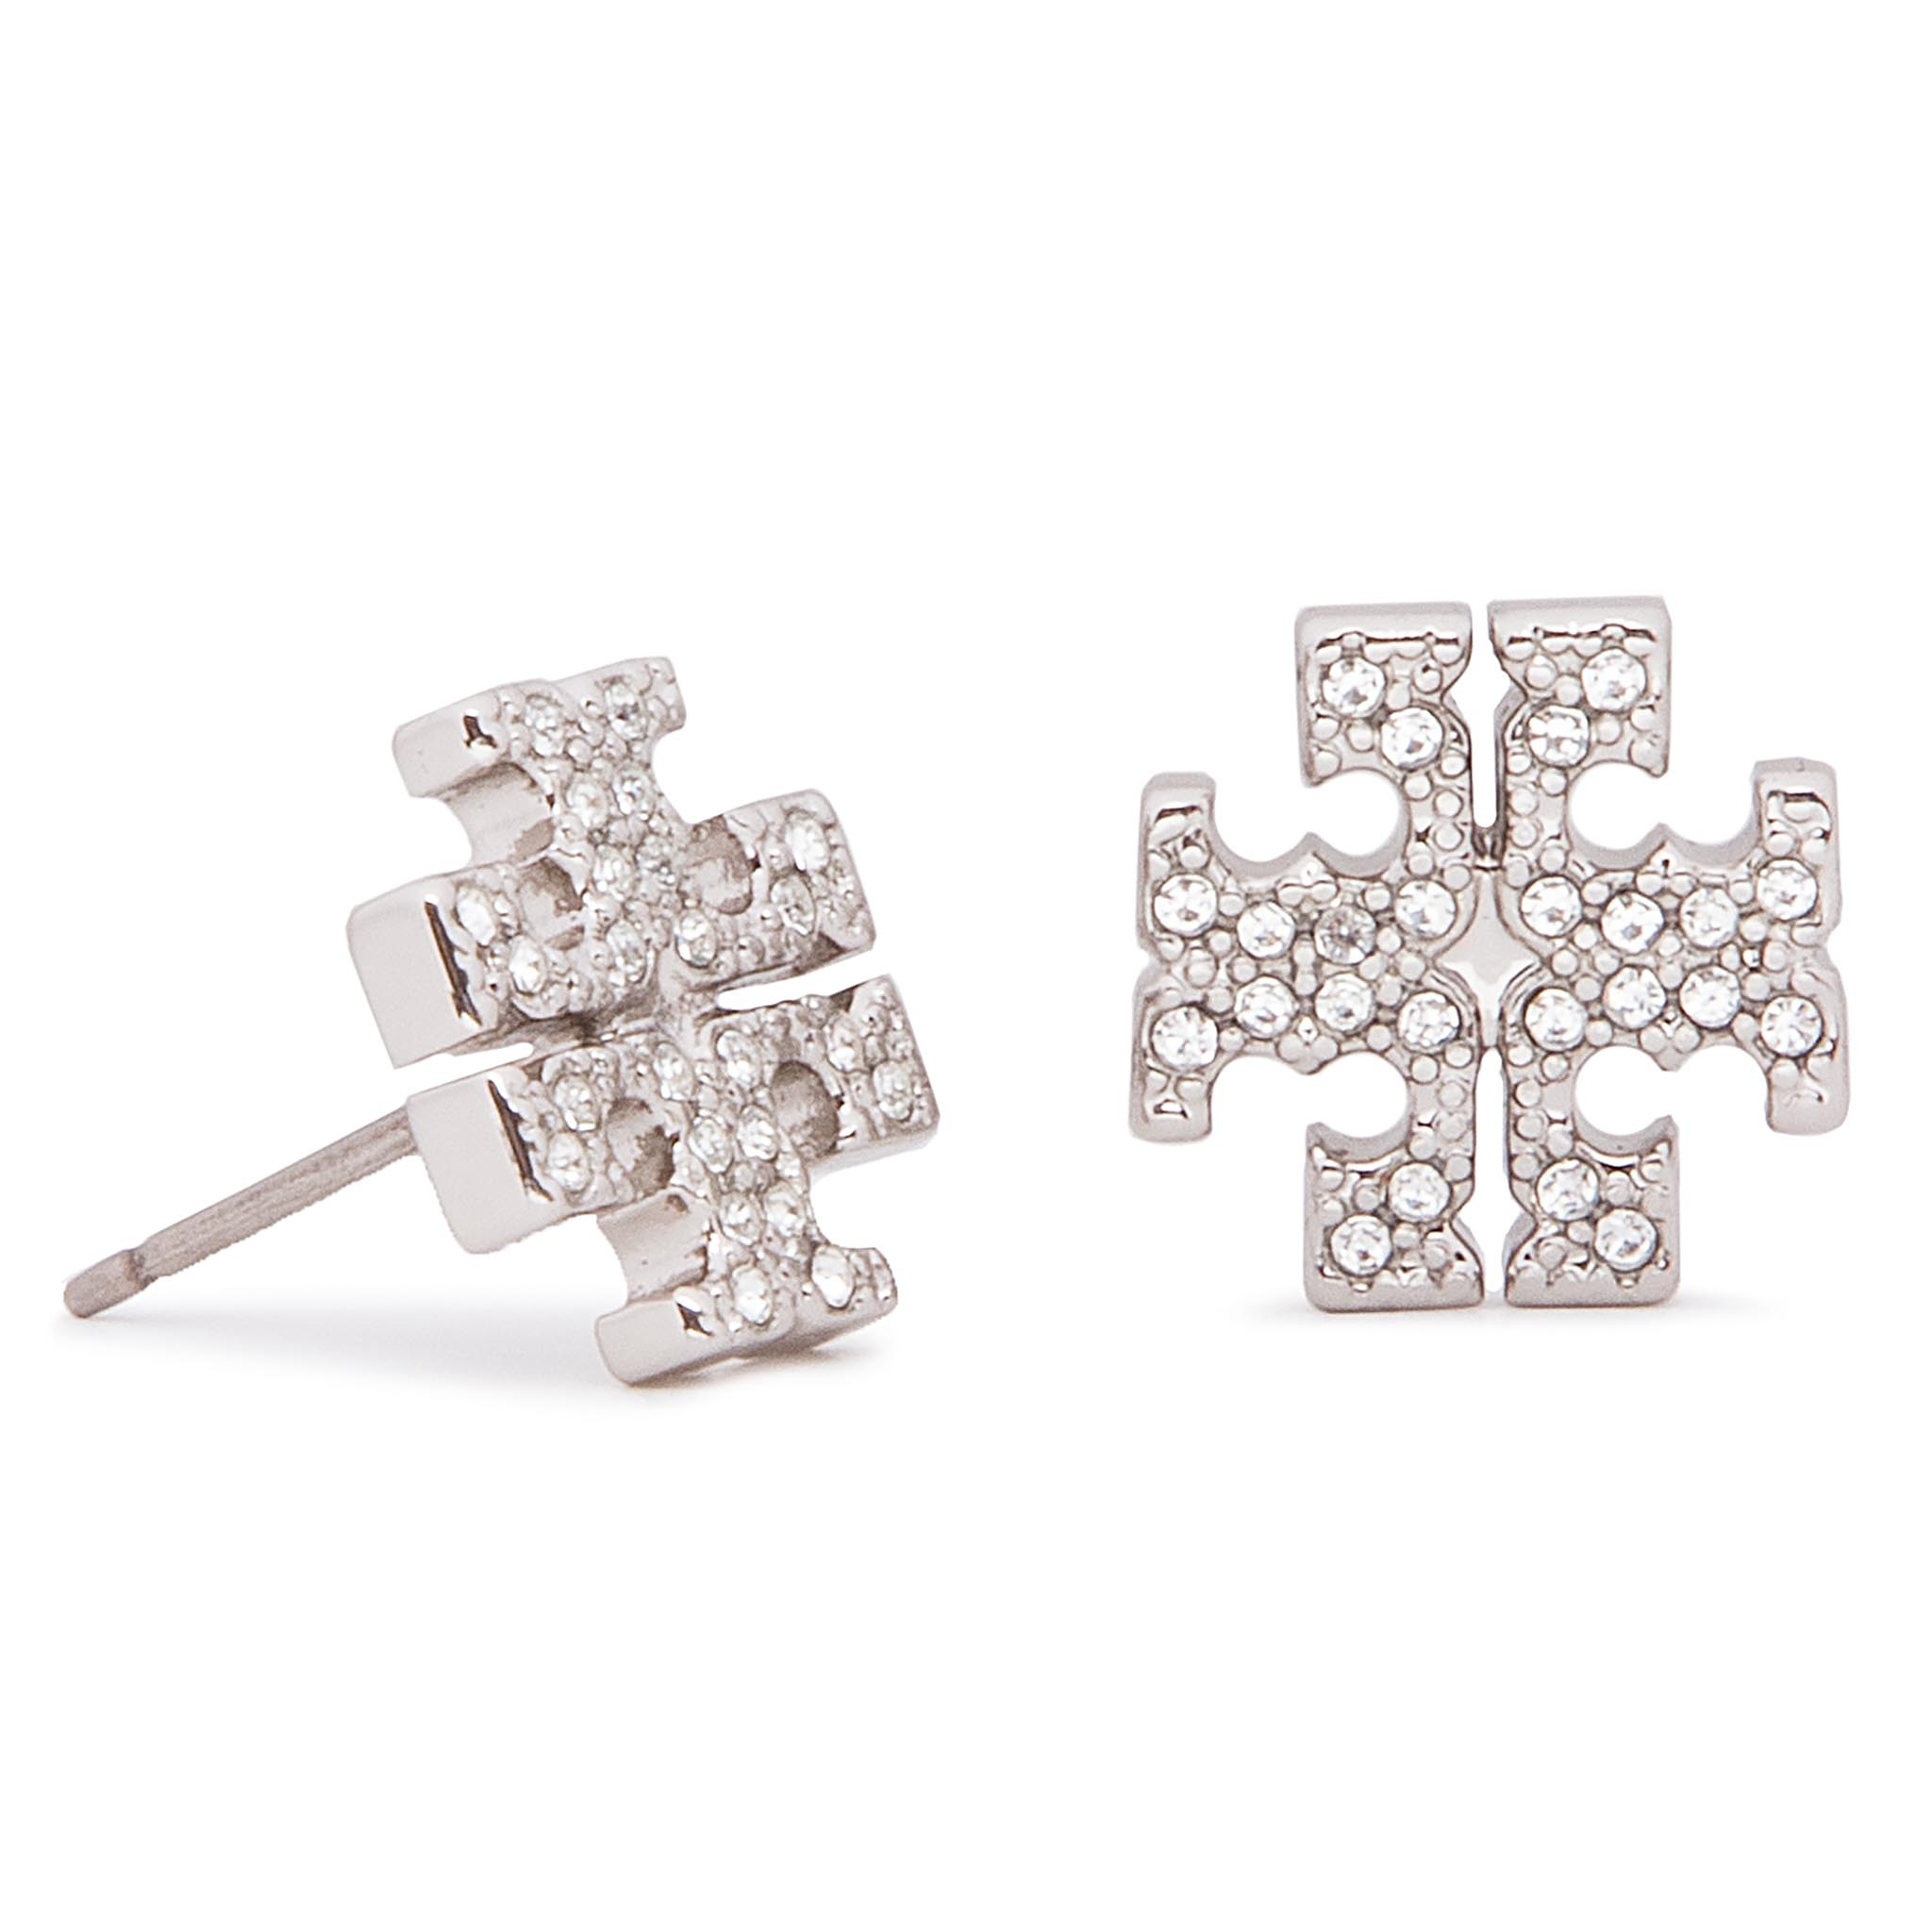 Boucles d'oreilles TORY BURCH - Crystal Logo Stud Earring 53423 Tory Silver/Crystal 042